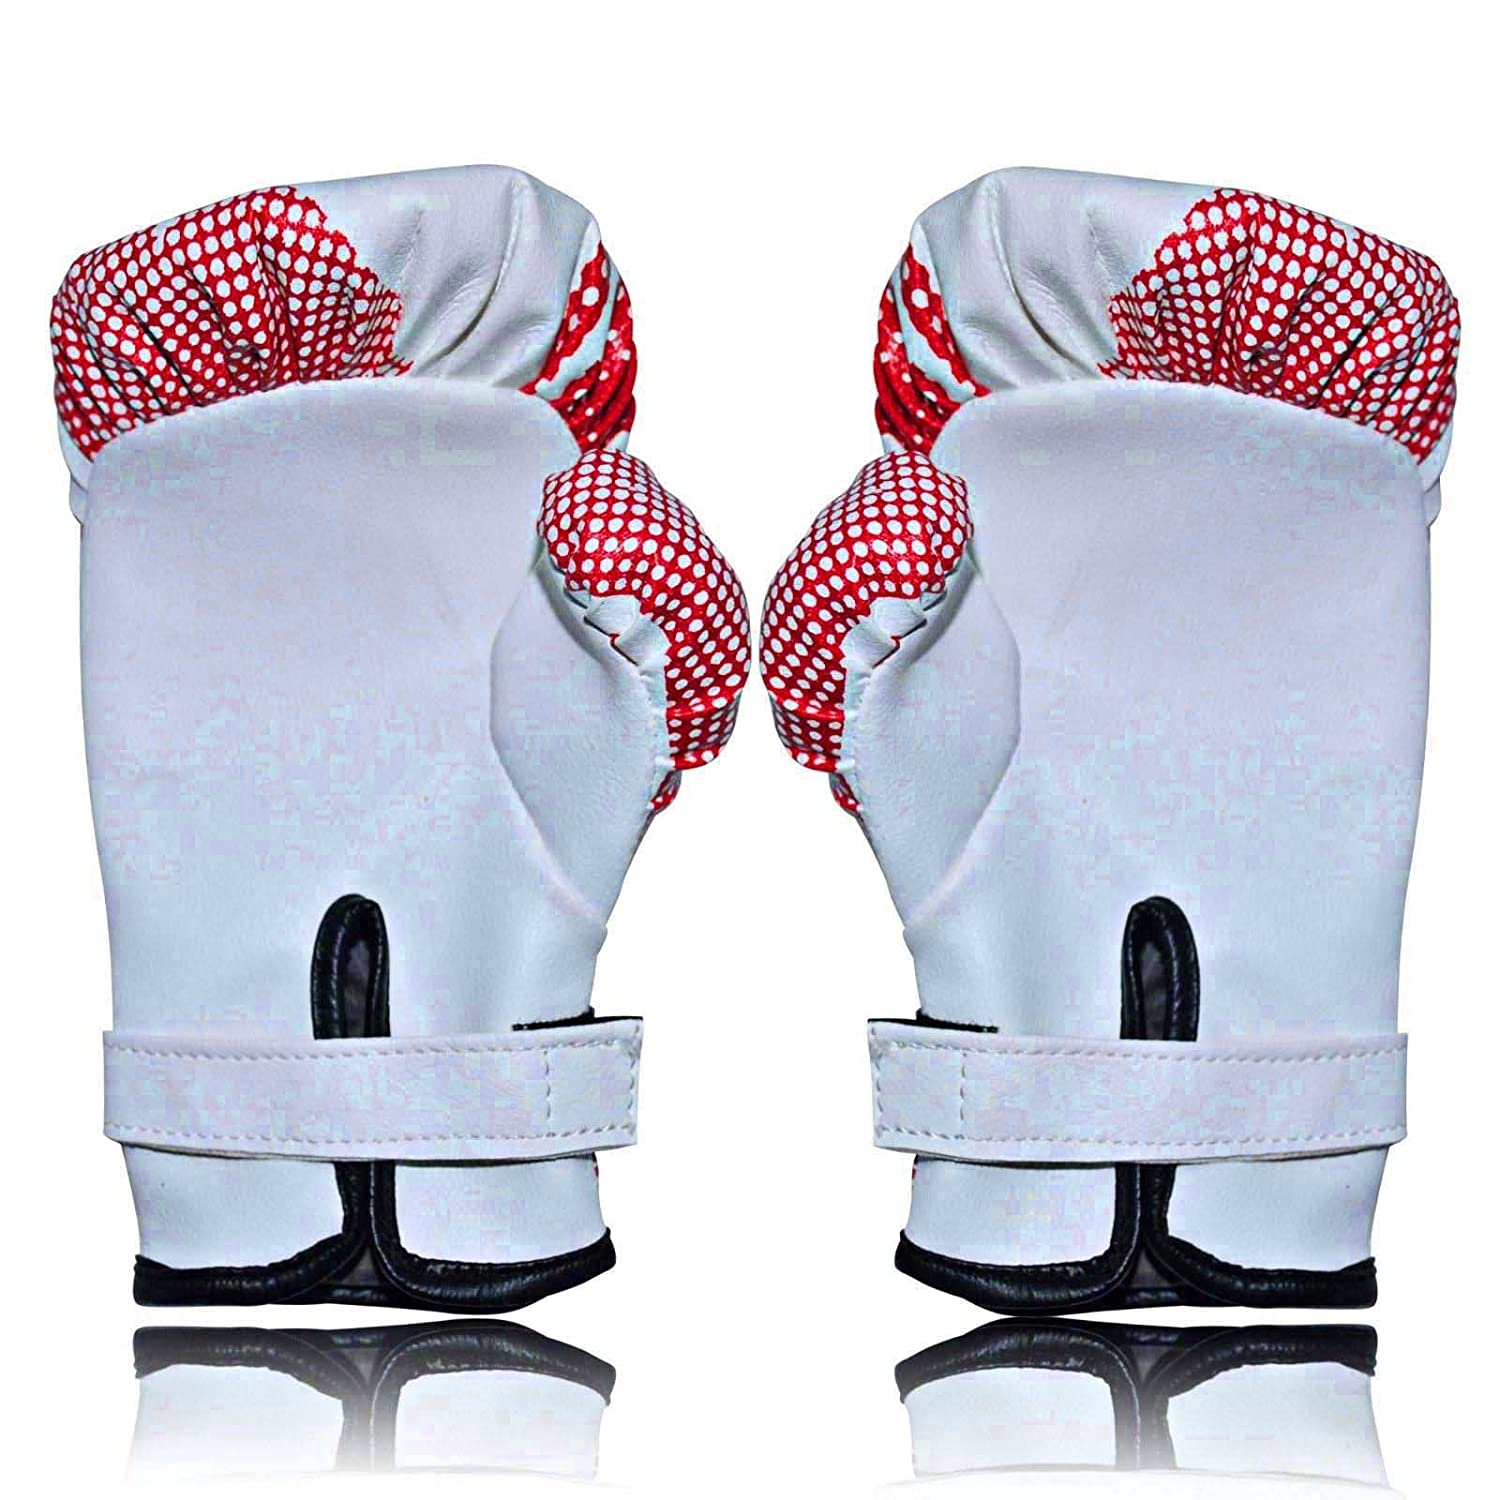 Training Bag Mitts Red//White Boxing Gloves Mico Hide leather size 2 oz New junior Boxing Gloves Sparring